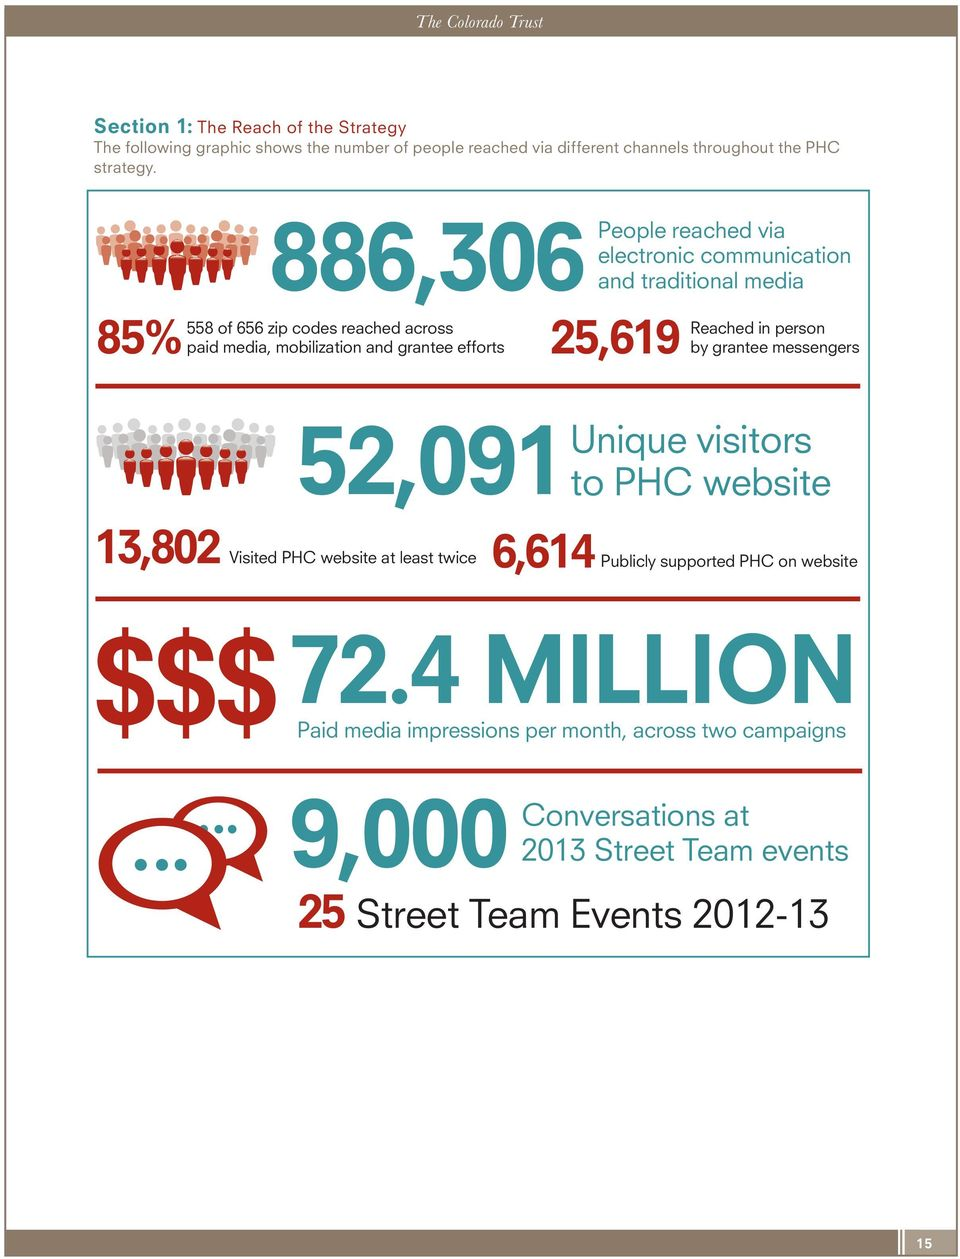 traditional media Reached in person by grantee messengers 52,091 Unique visitors to PHC website 13,802 Visited PHC website at least twice 6,614 Publicly supported